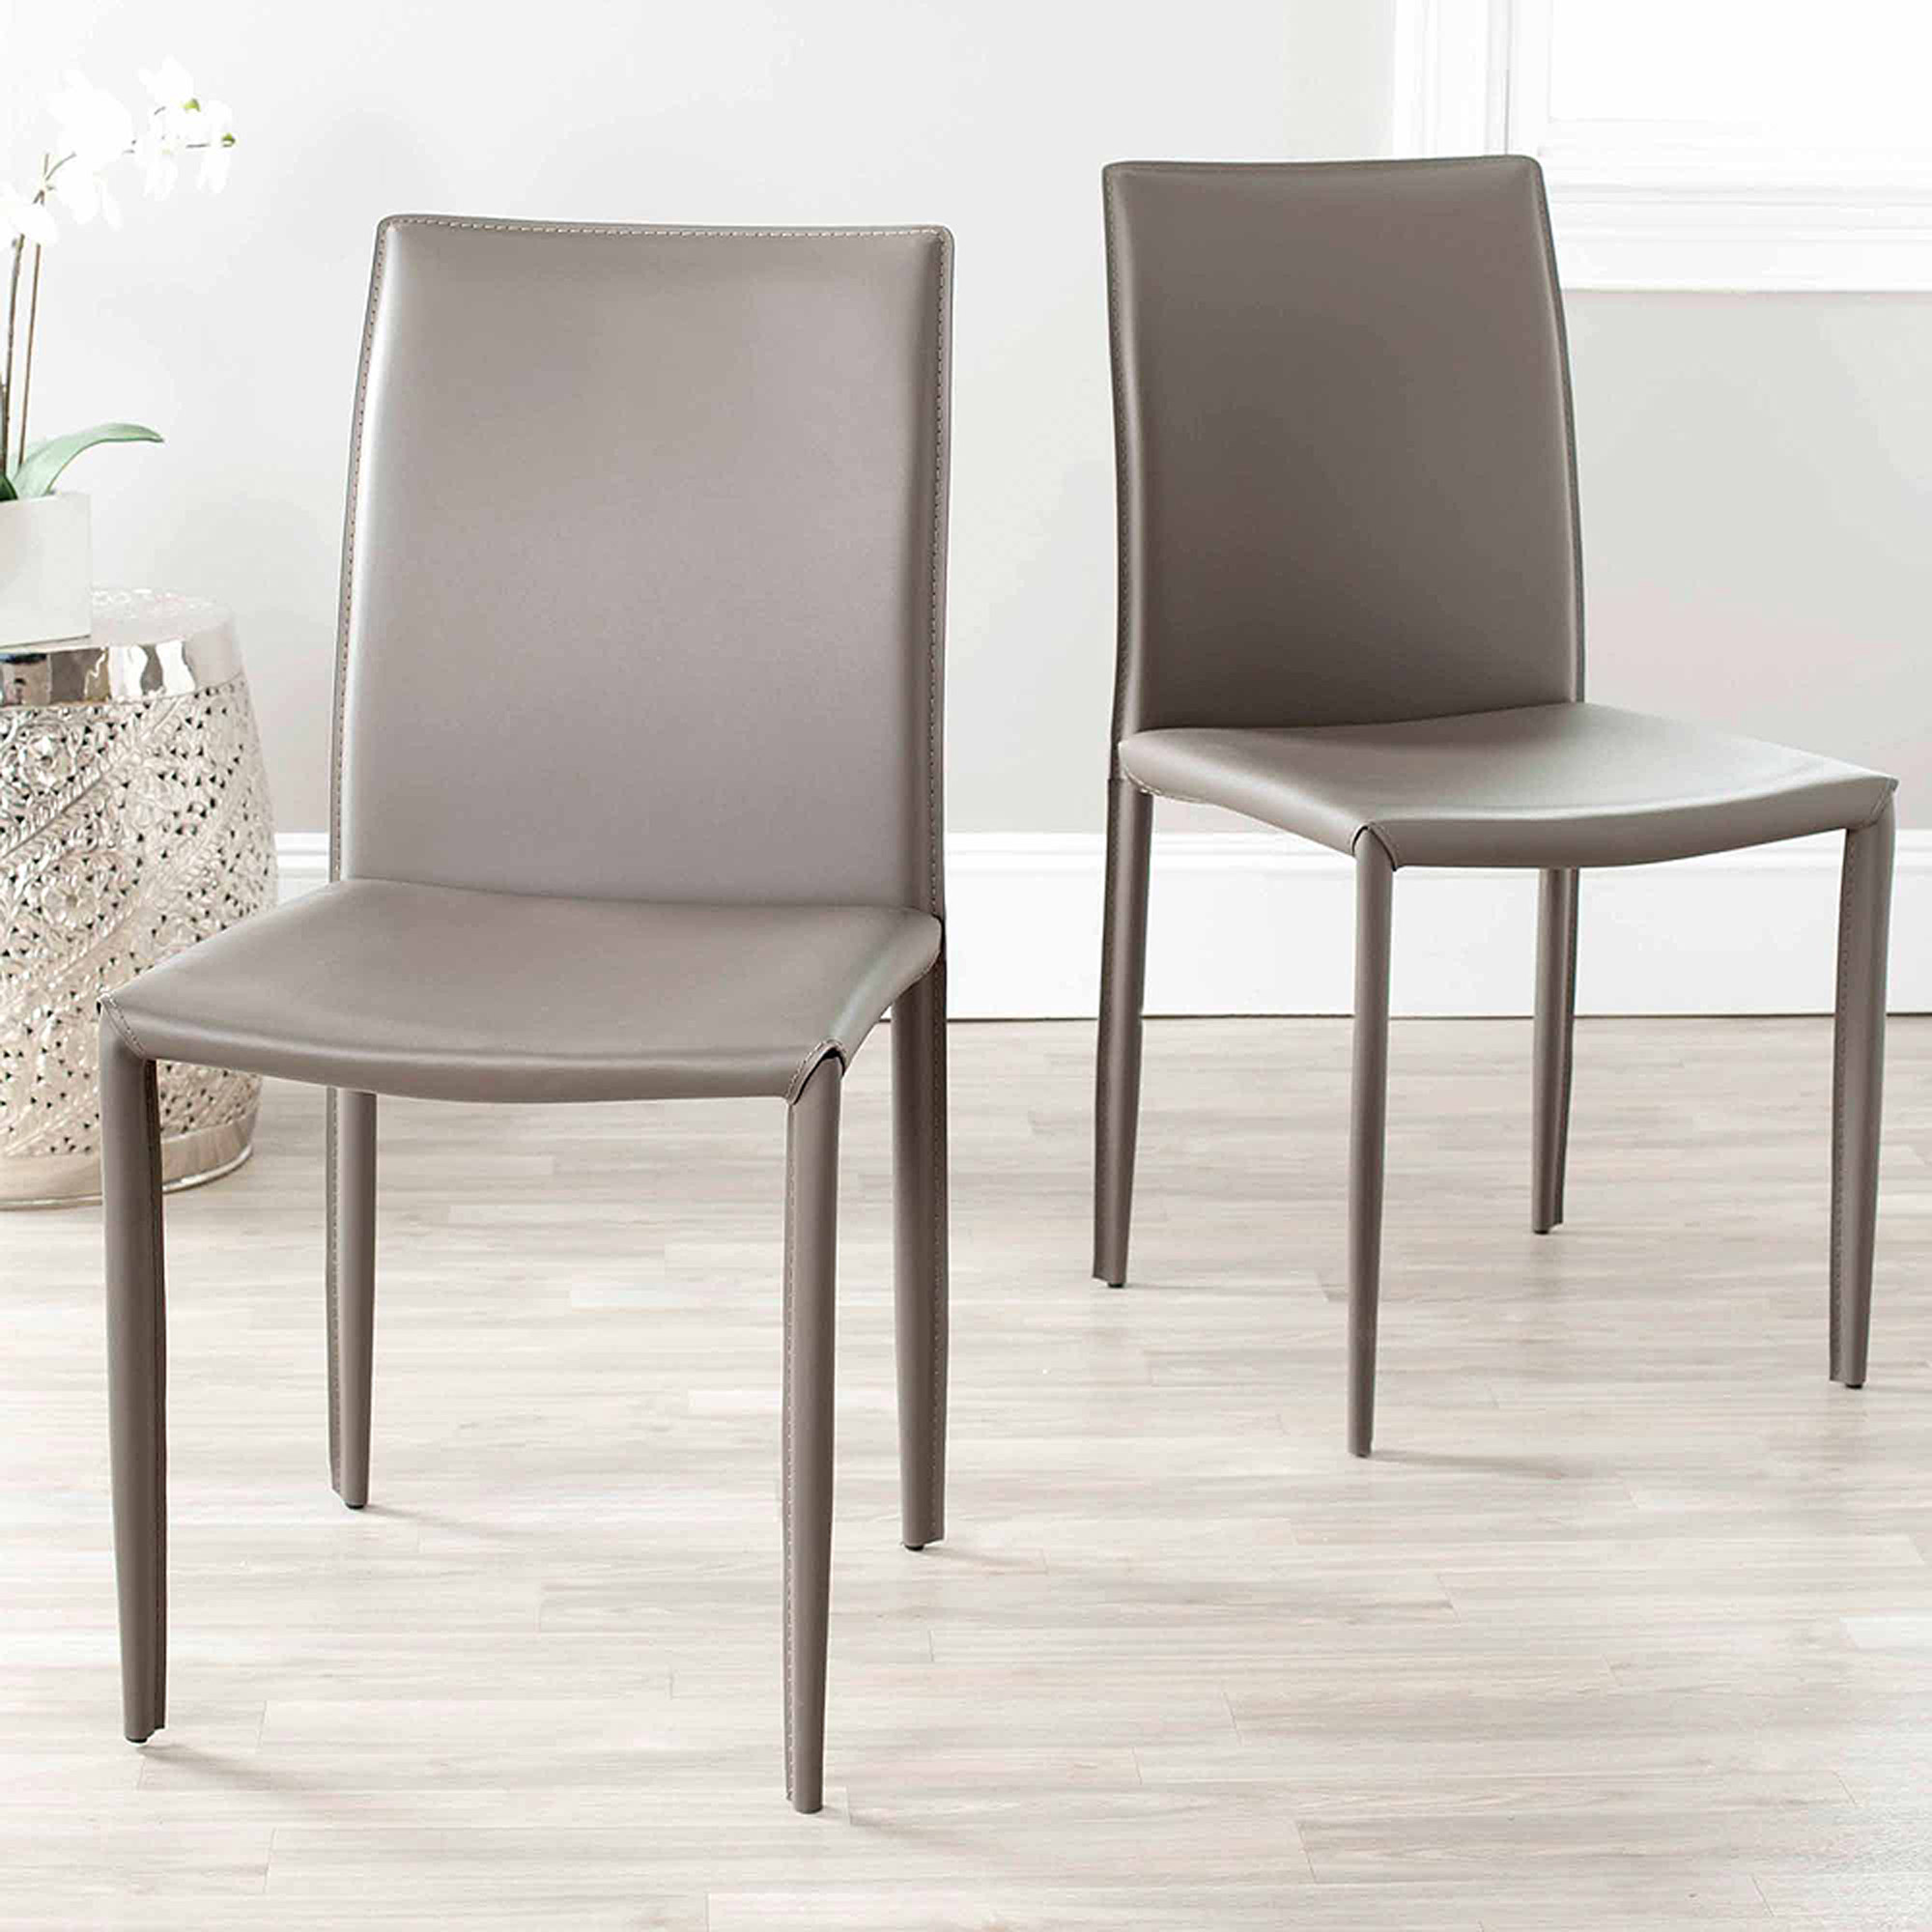 Safavieh Karna Dining Chair, Set of 2